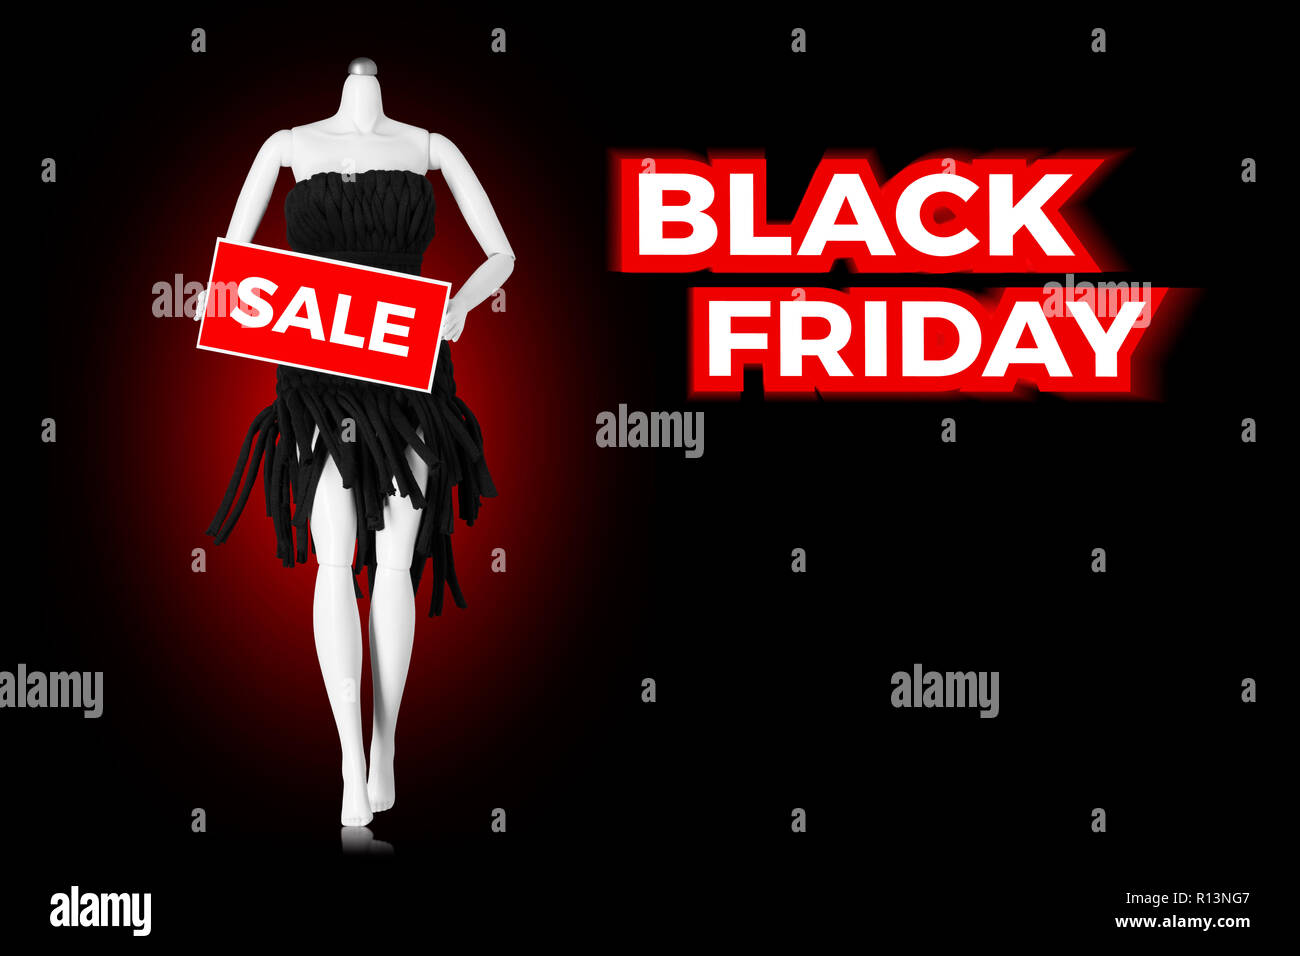 Black Friday Sale Holiday Shopping Concept Mannequin With Sale Sign Stock Photo Alamy